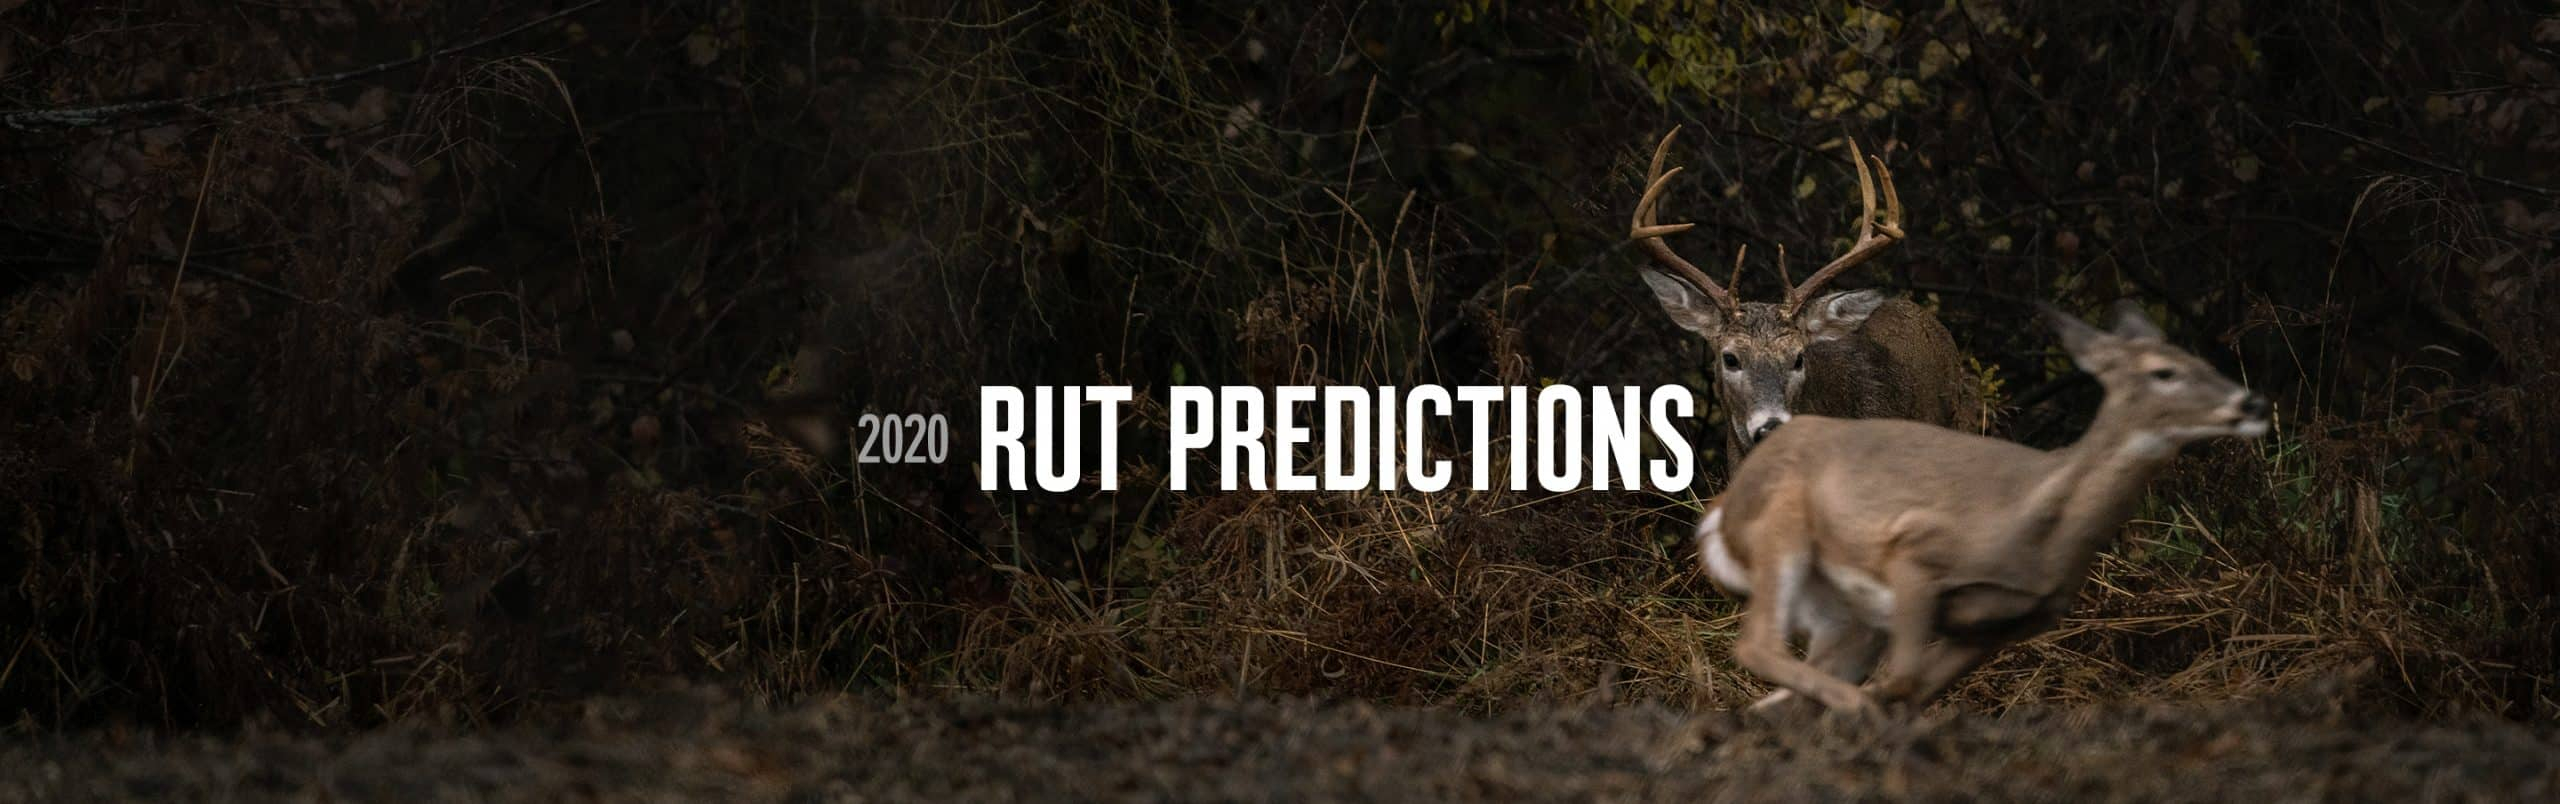 2020 Rut Predictions | Onx Maps within Prediction Of Deer Rut 2021 In Ontario